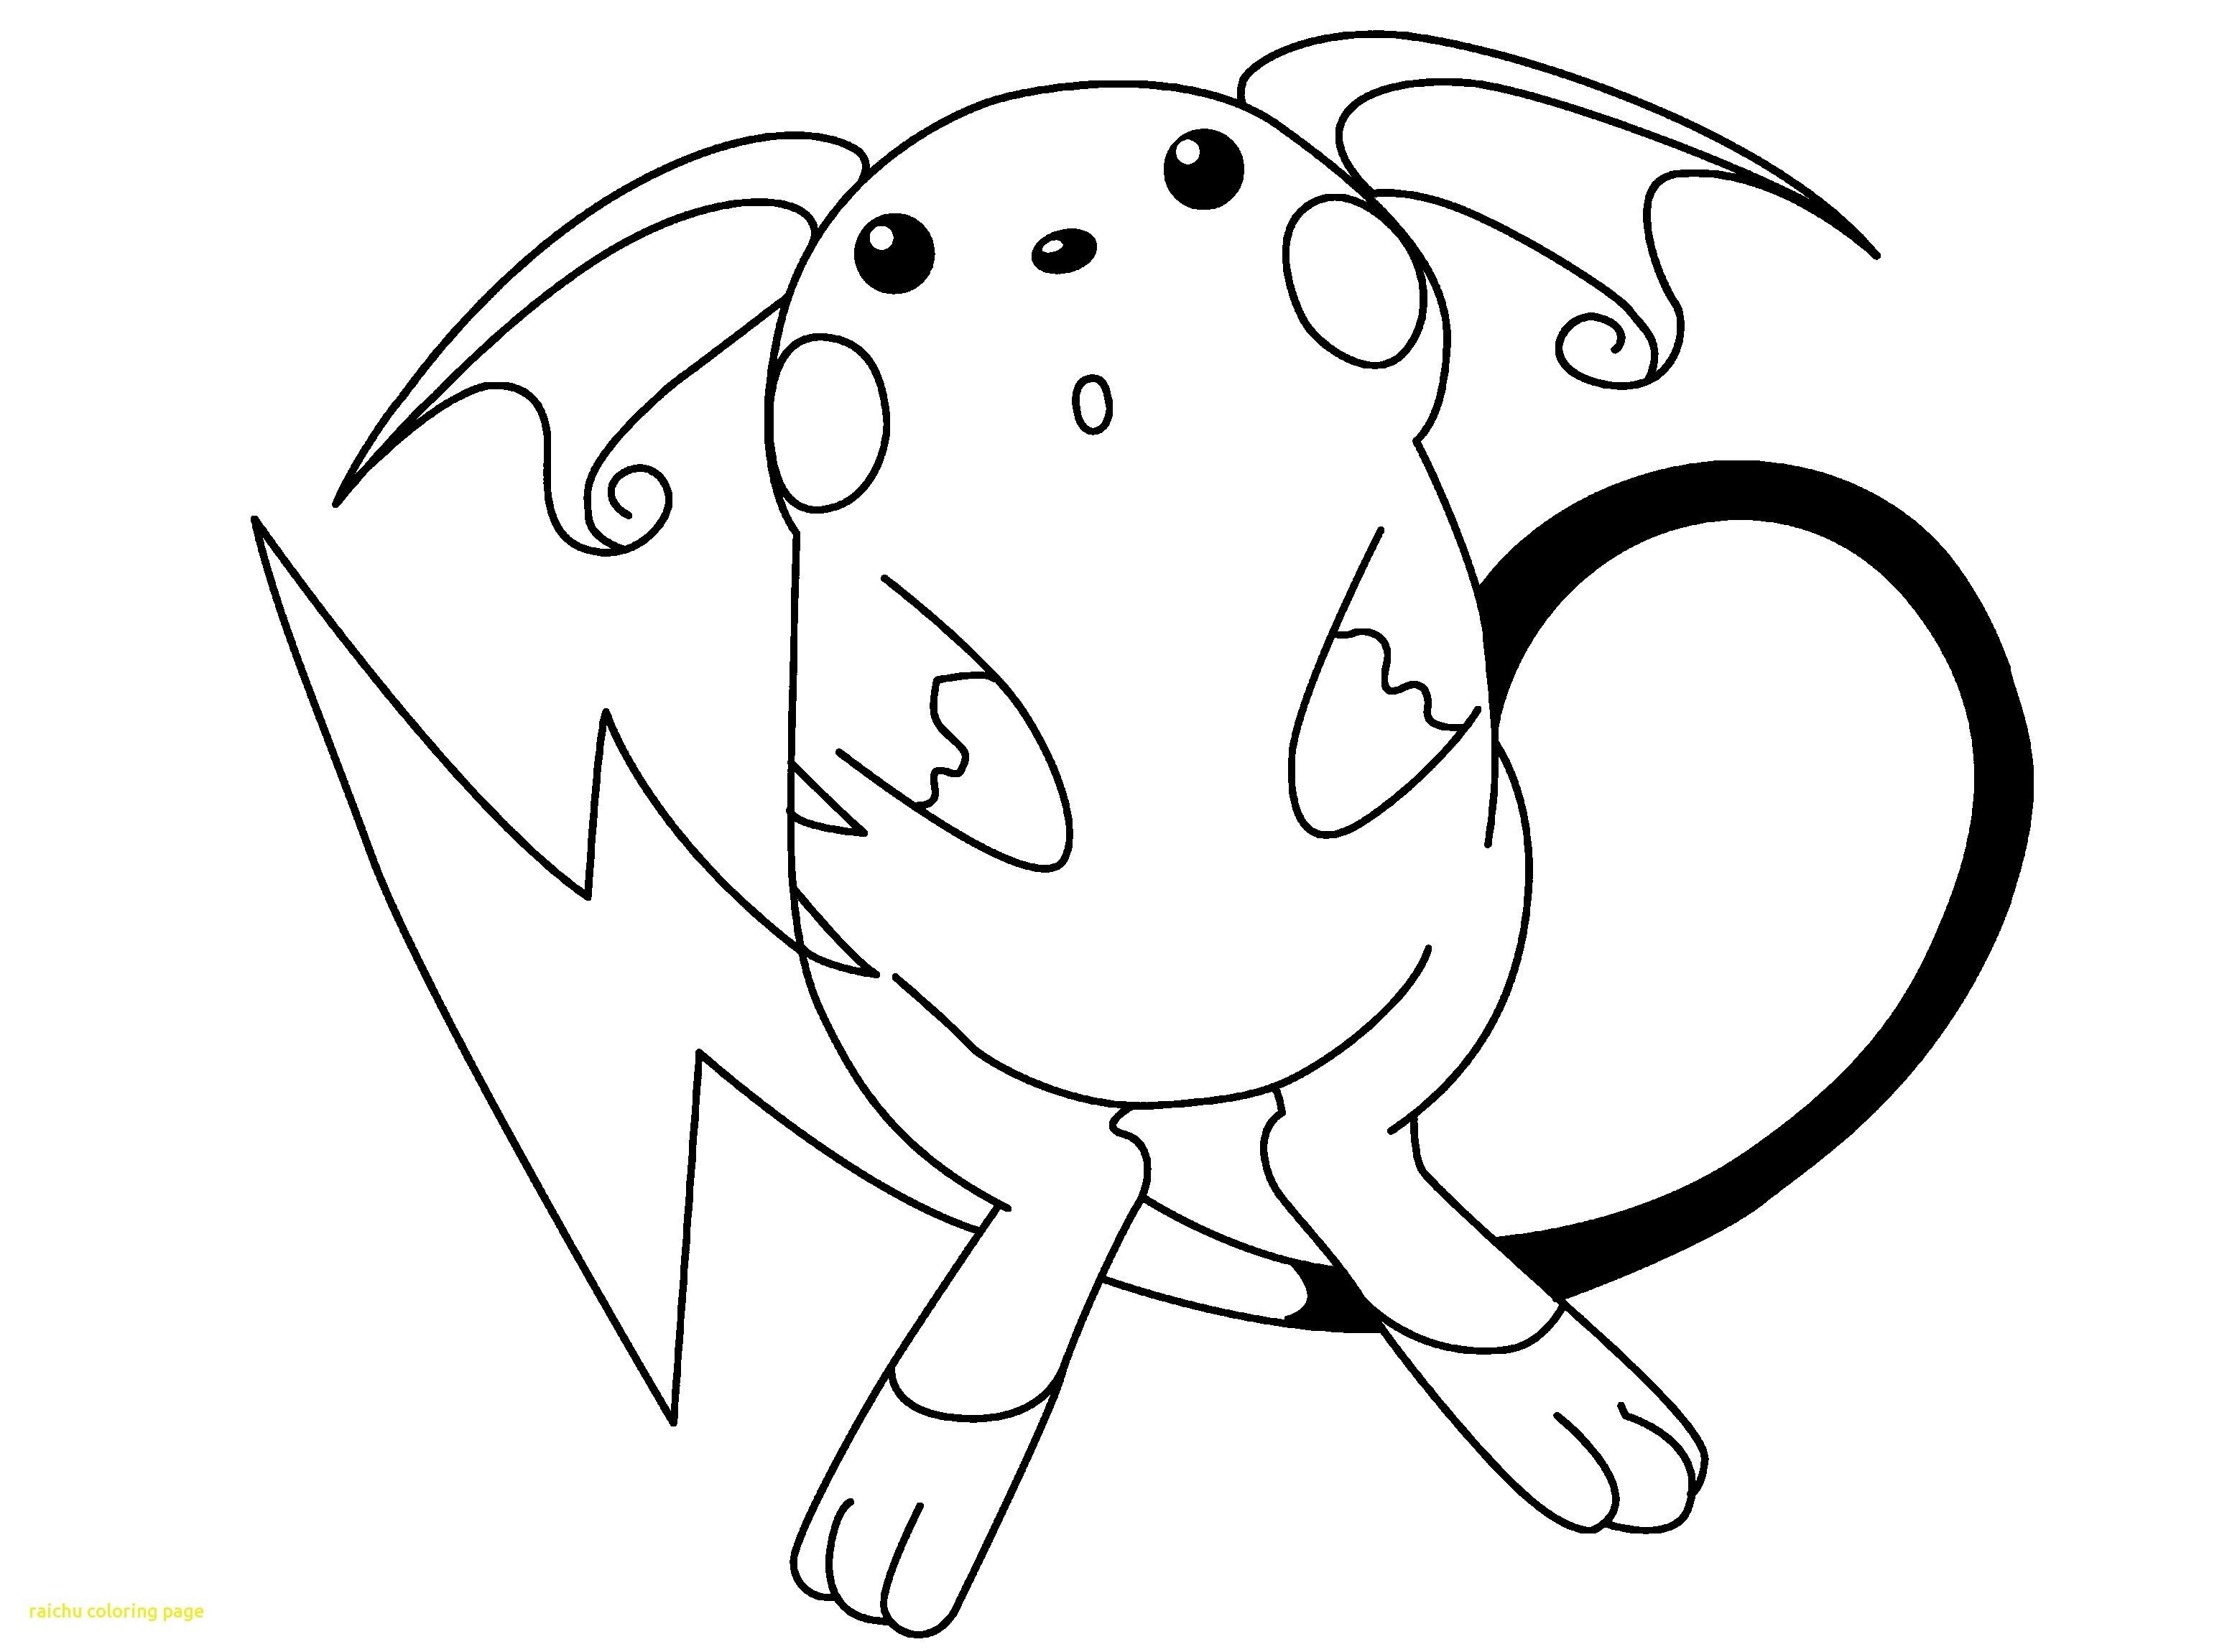 Pokemon Raichu Coloring Pages From The Thousand Images On The Internet In Relation To Poke Pokemon Coloring Pages Pikachu Coloring Page Turtle Coloring Pages